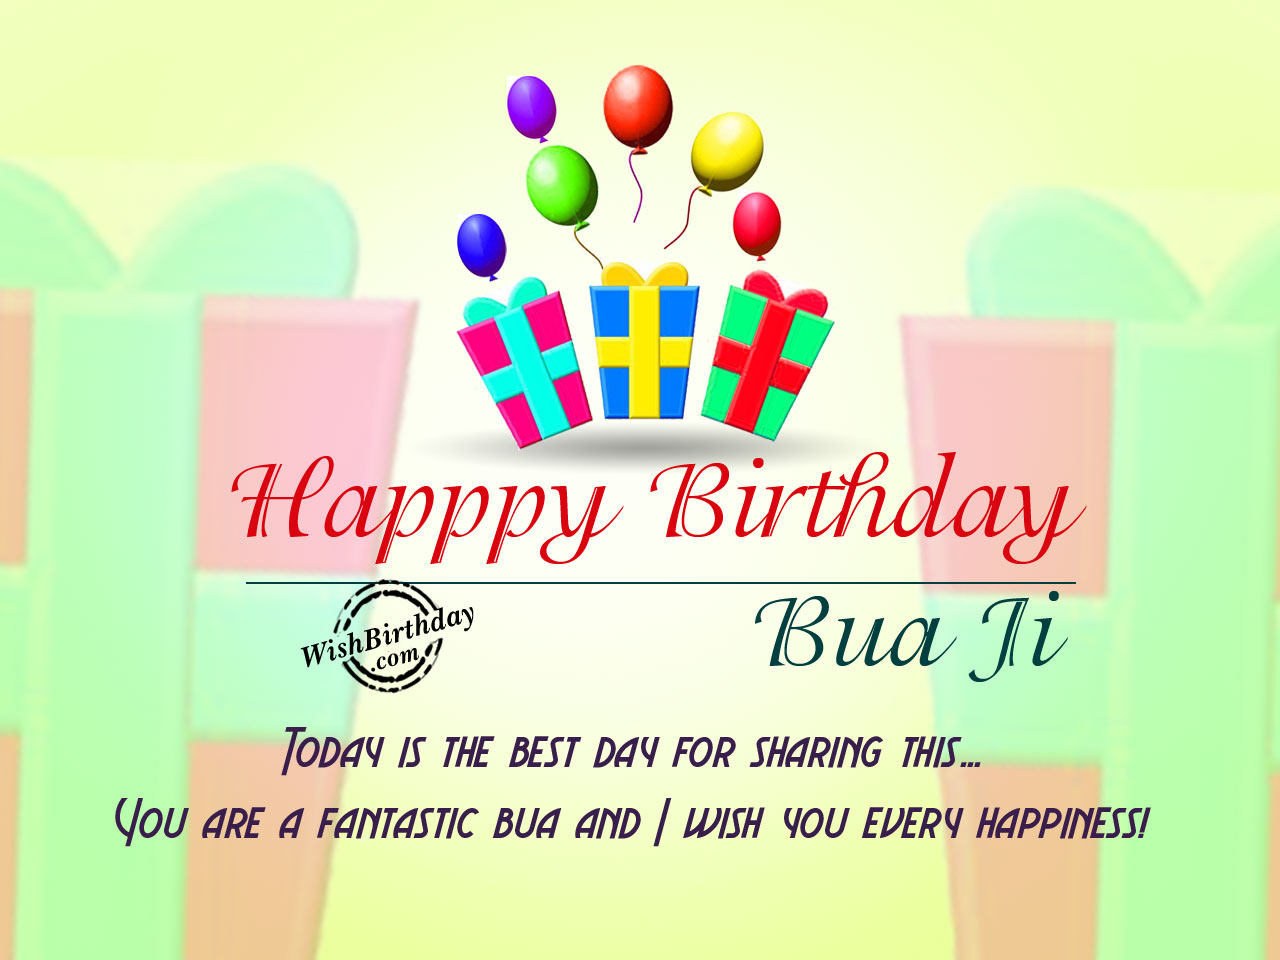 Birthday wishes for bua ji birthday images pictures today is the best day for sharing this birthdayhappy birthday bua ji bookmarktalkfo Image collections